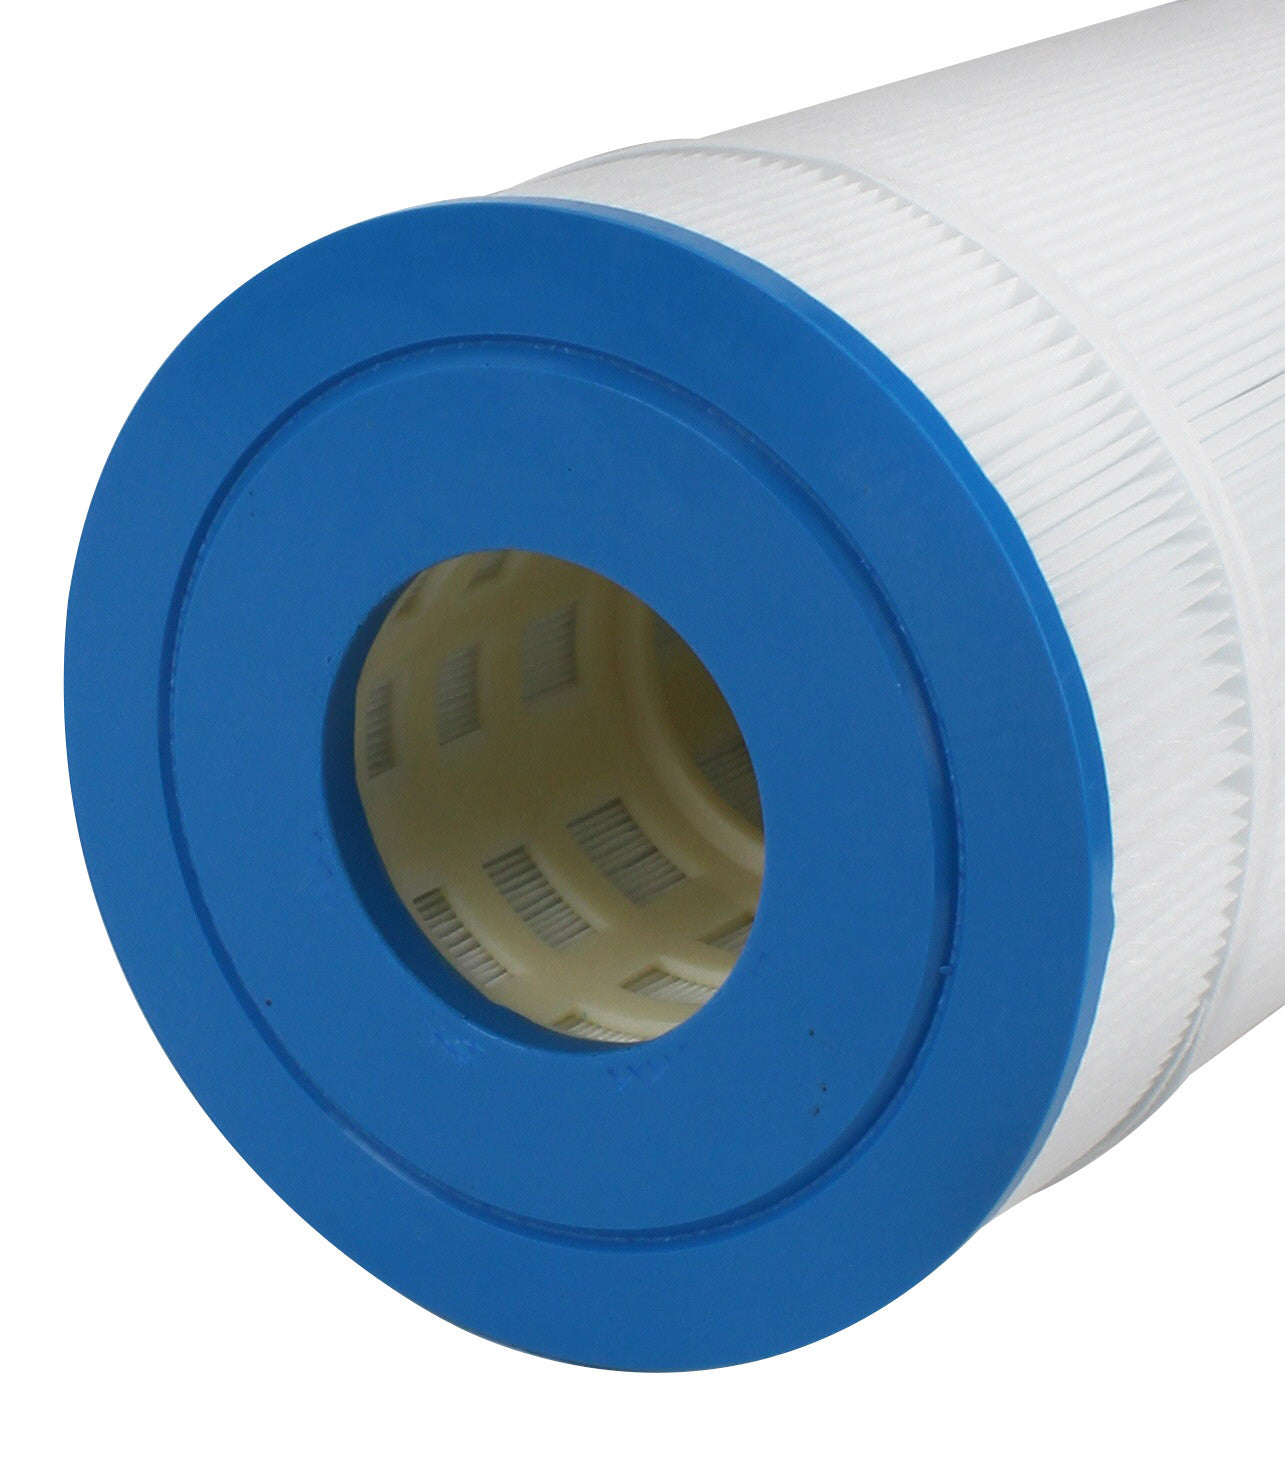 Replaces Unicel C-7495, Pleatco PA126 • Swimming Pool Filter Cartridge